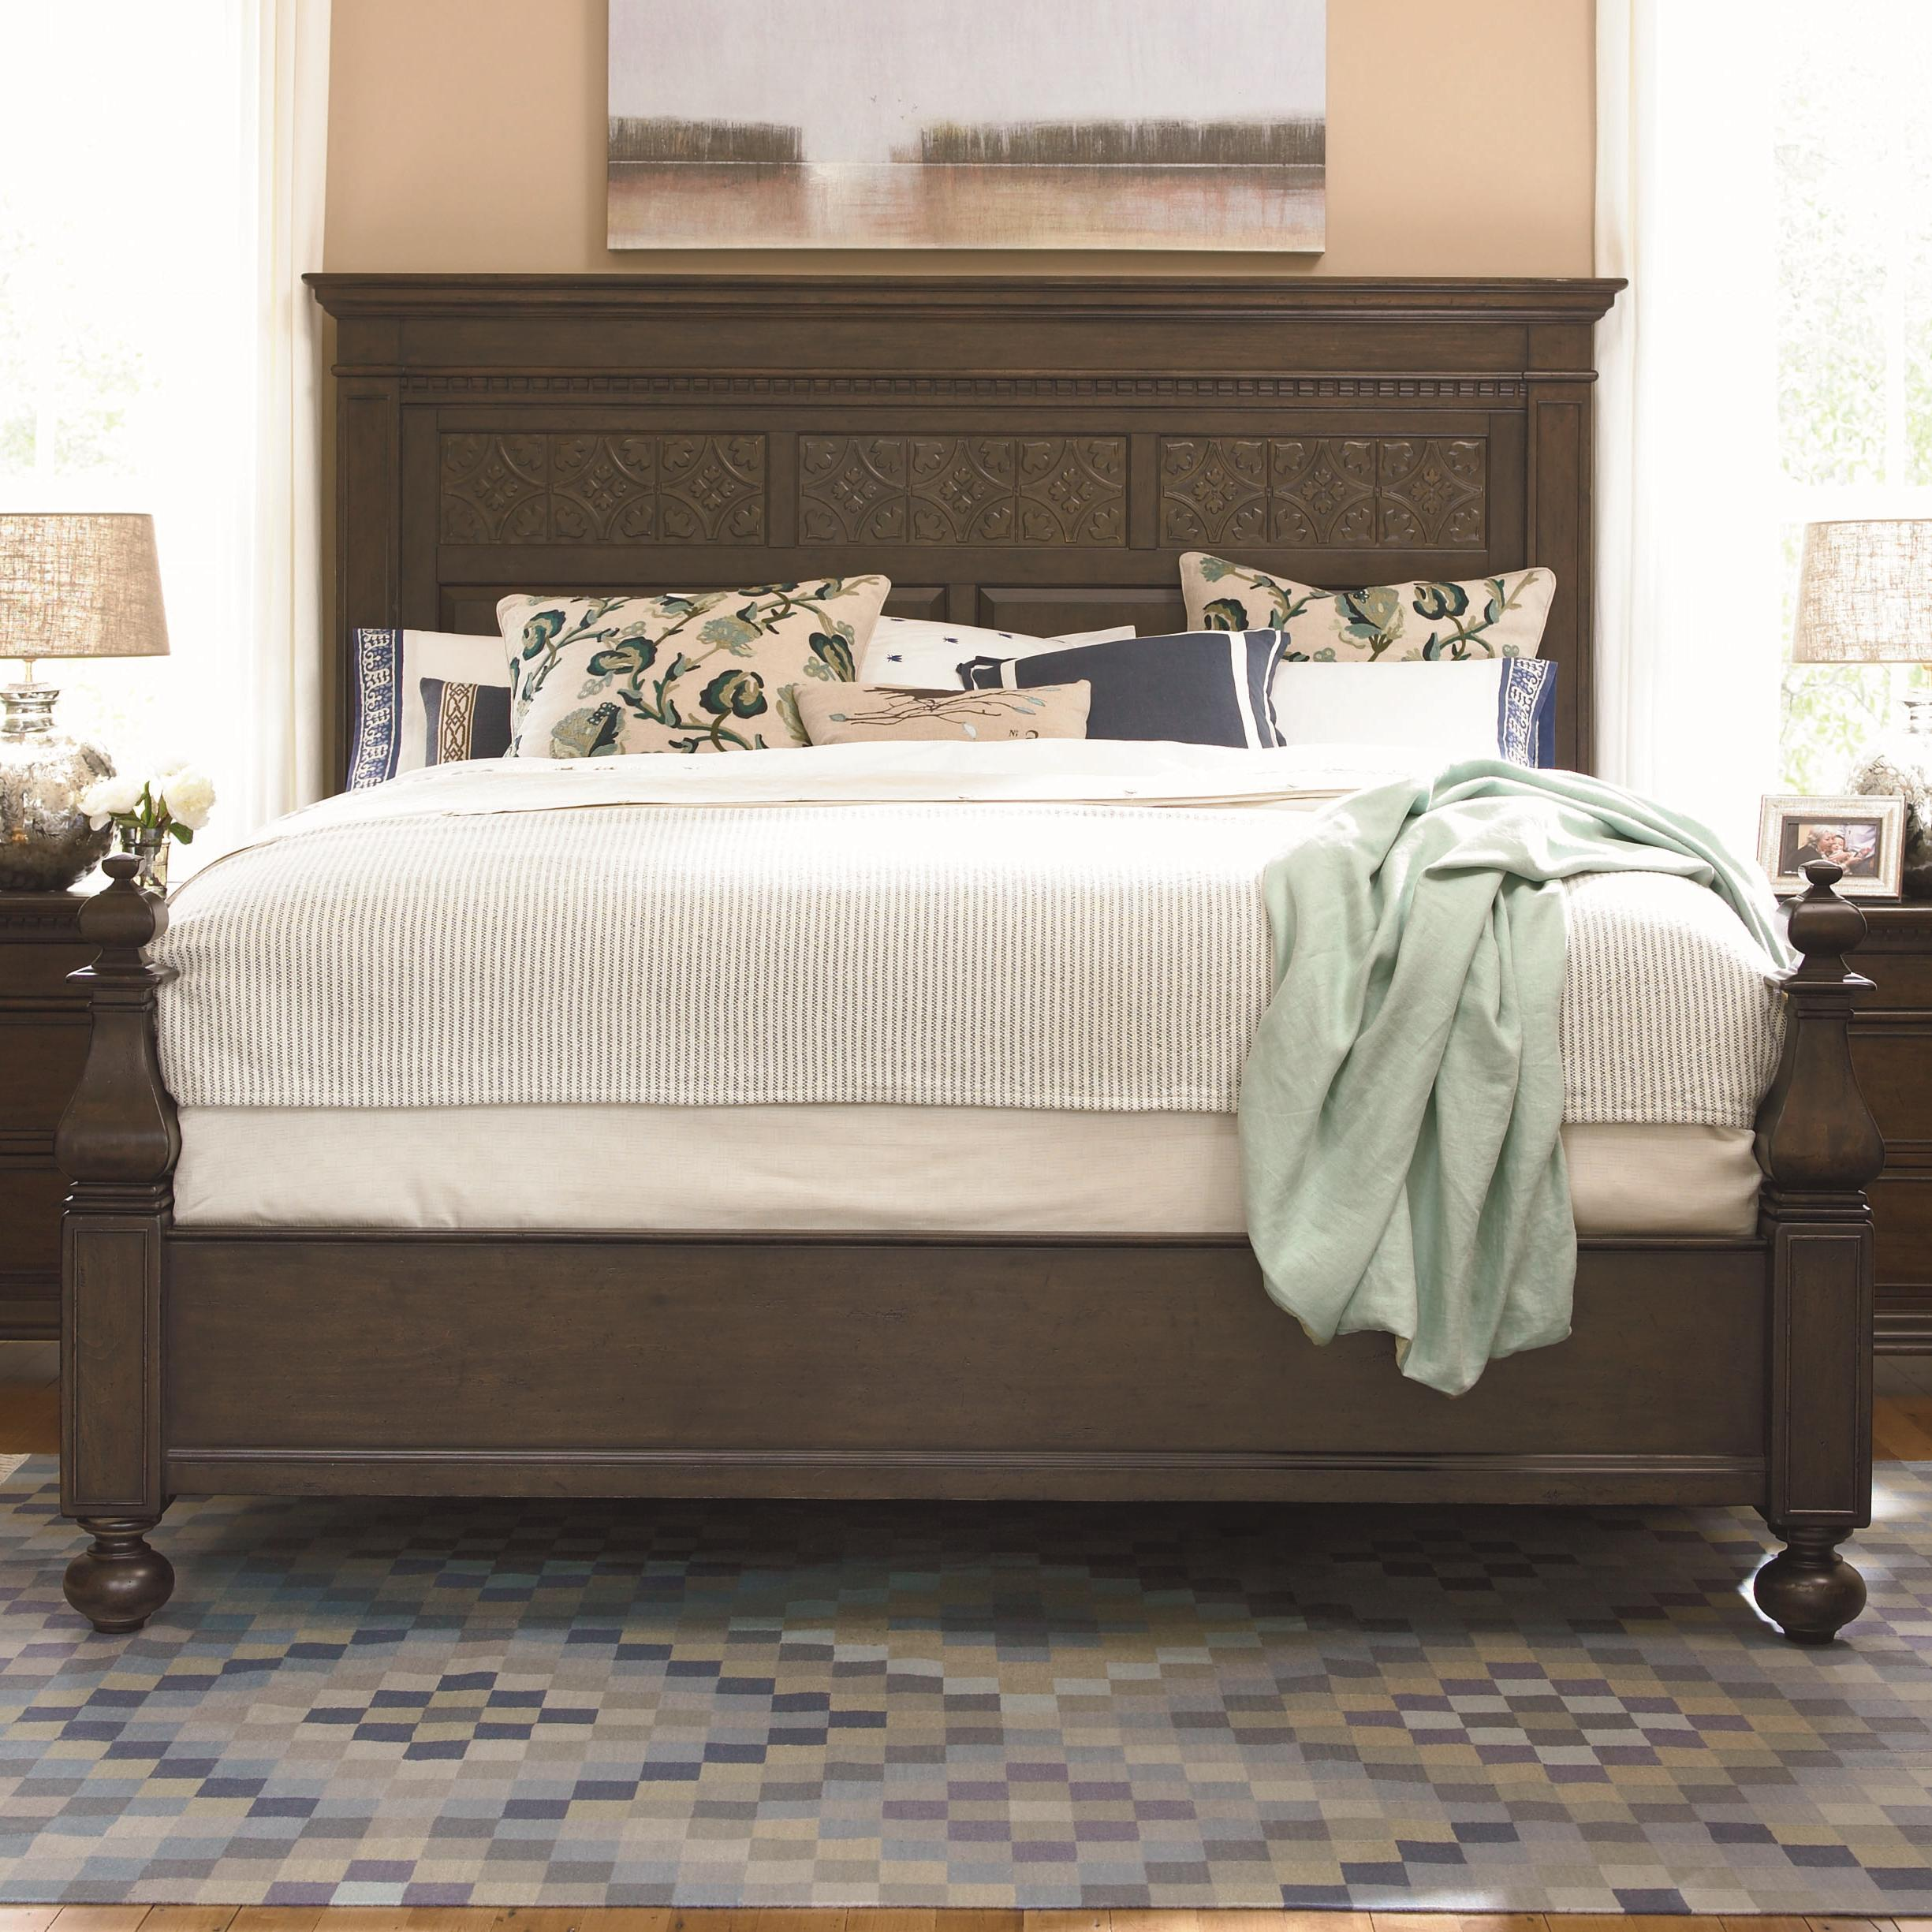 Queen Aunt Peggy\'s Bed with Headboard and Footboard by Paula Deen ...